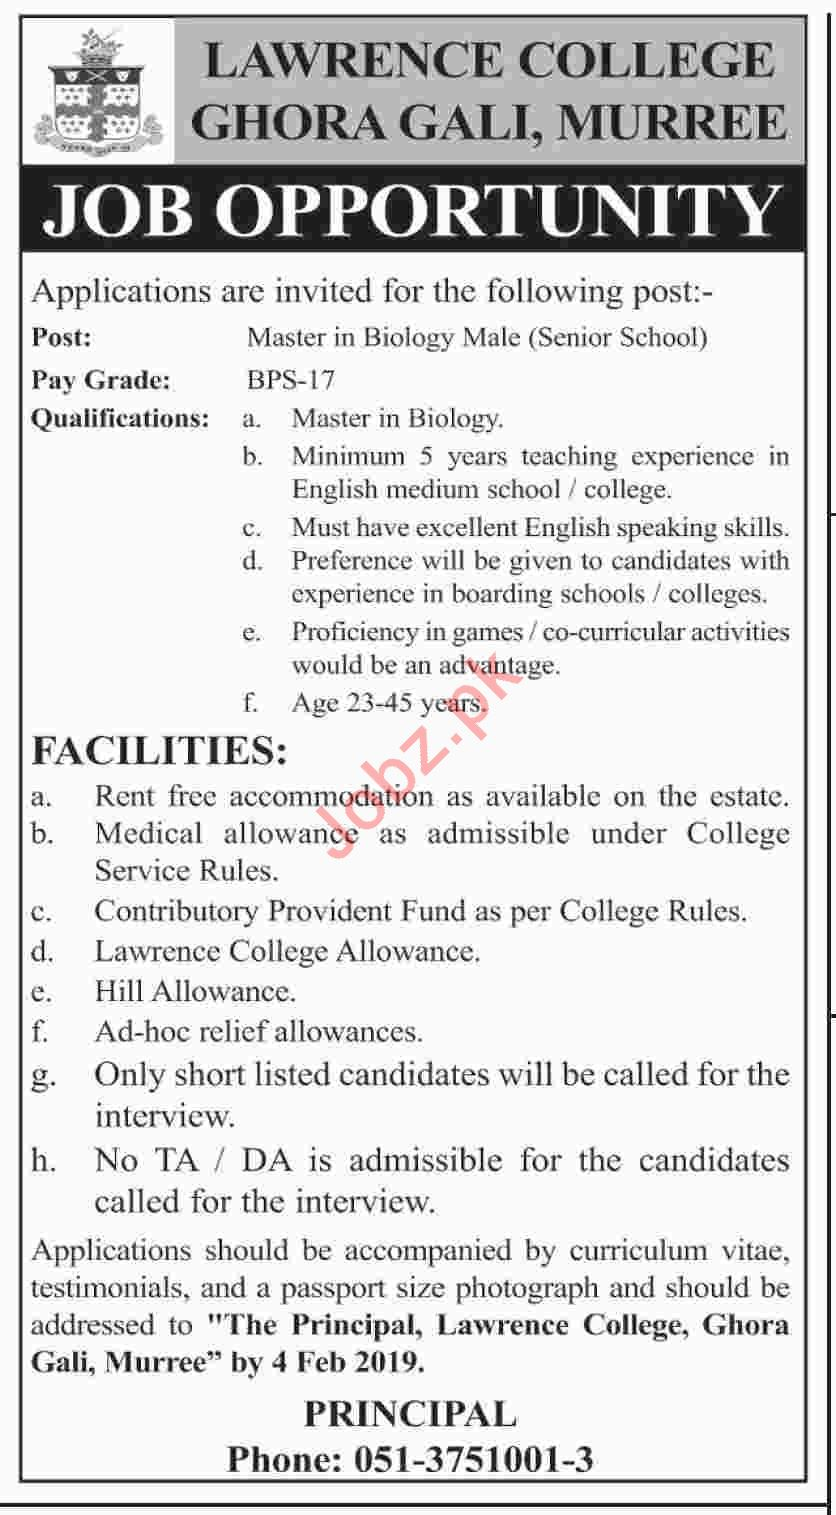 Lawrence College Ghora Gali Murree Jobs 2019 for Biology